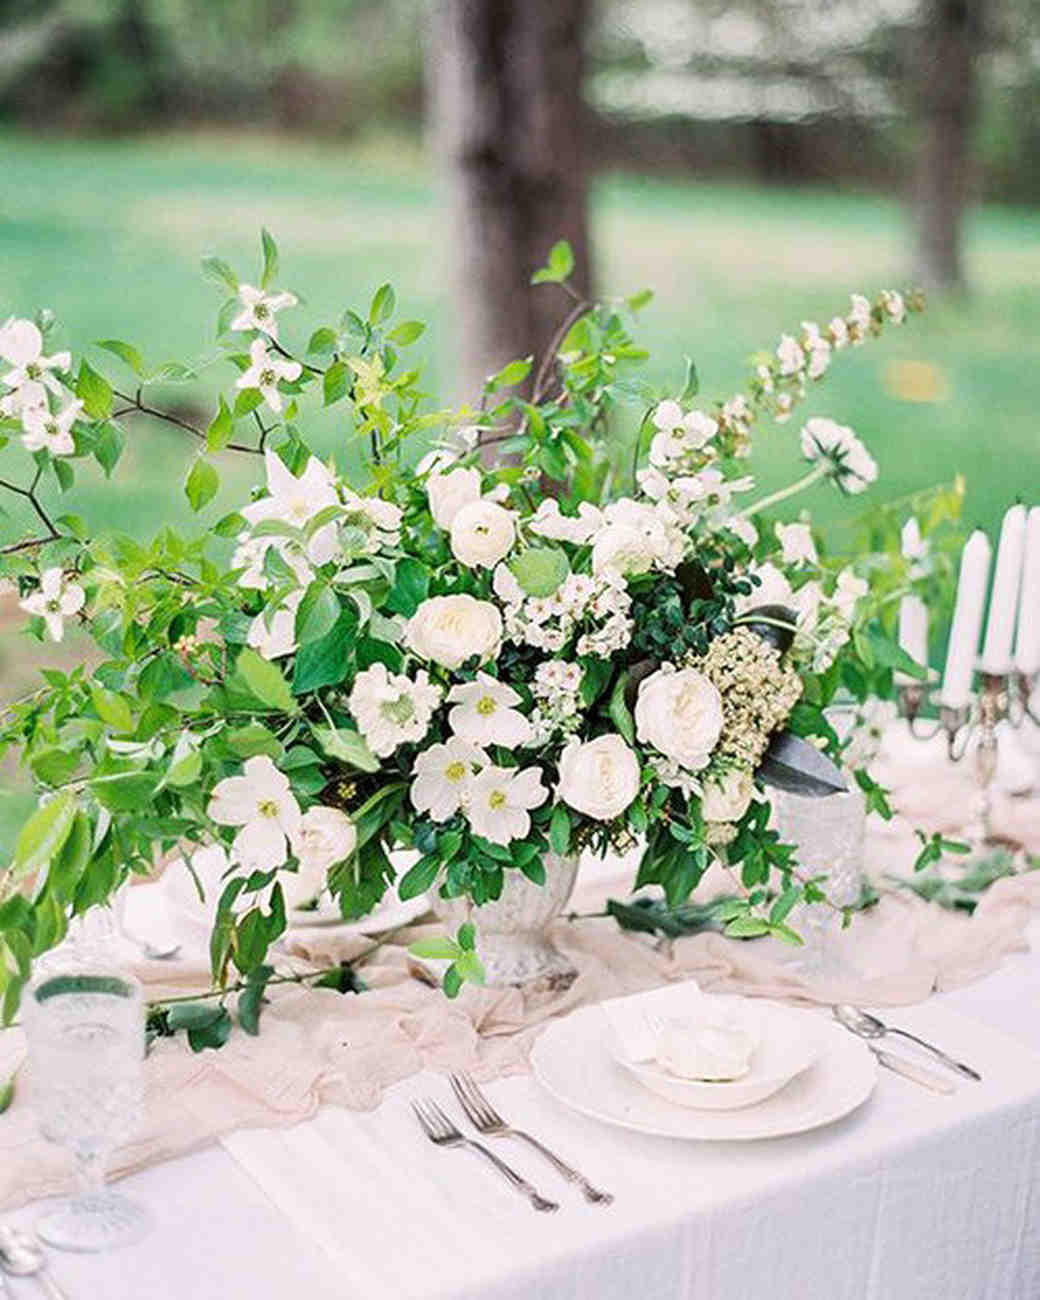 Flowers For Wedding Table Centerpieces: Spring Wedding Centerpieces We Love